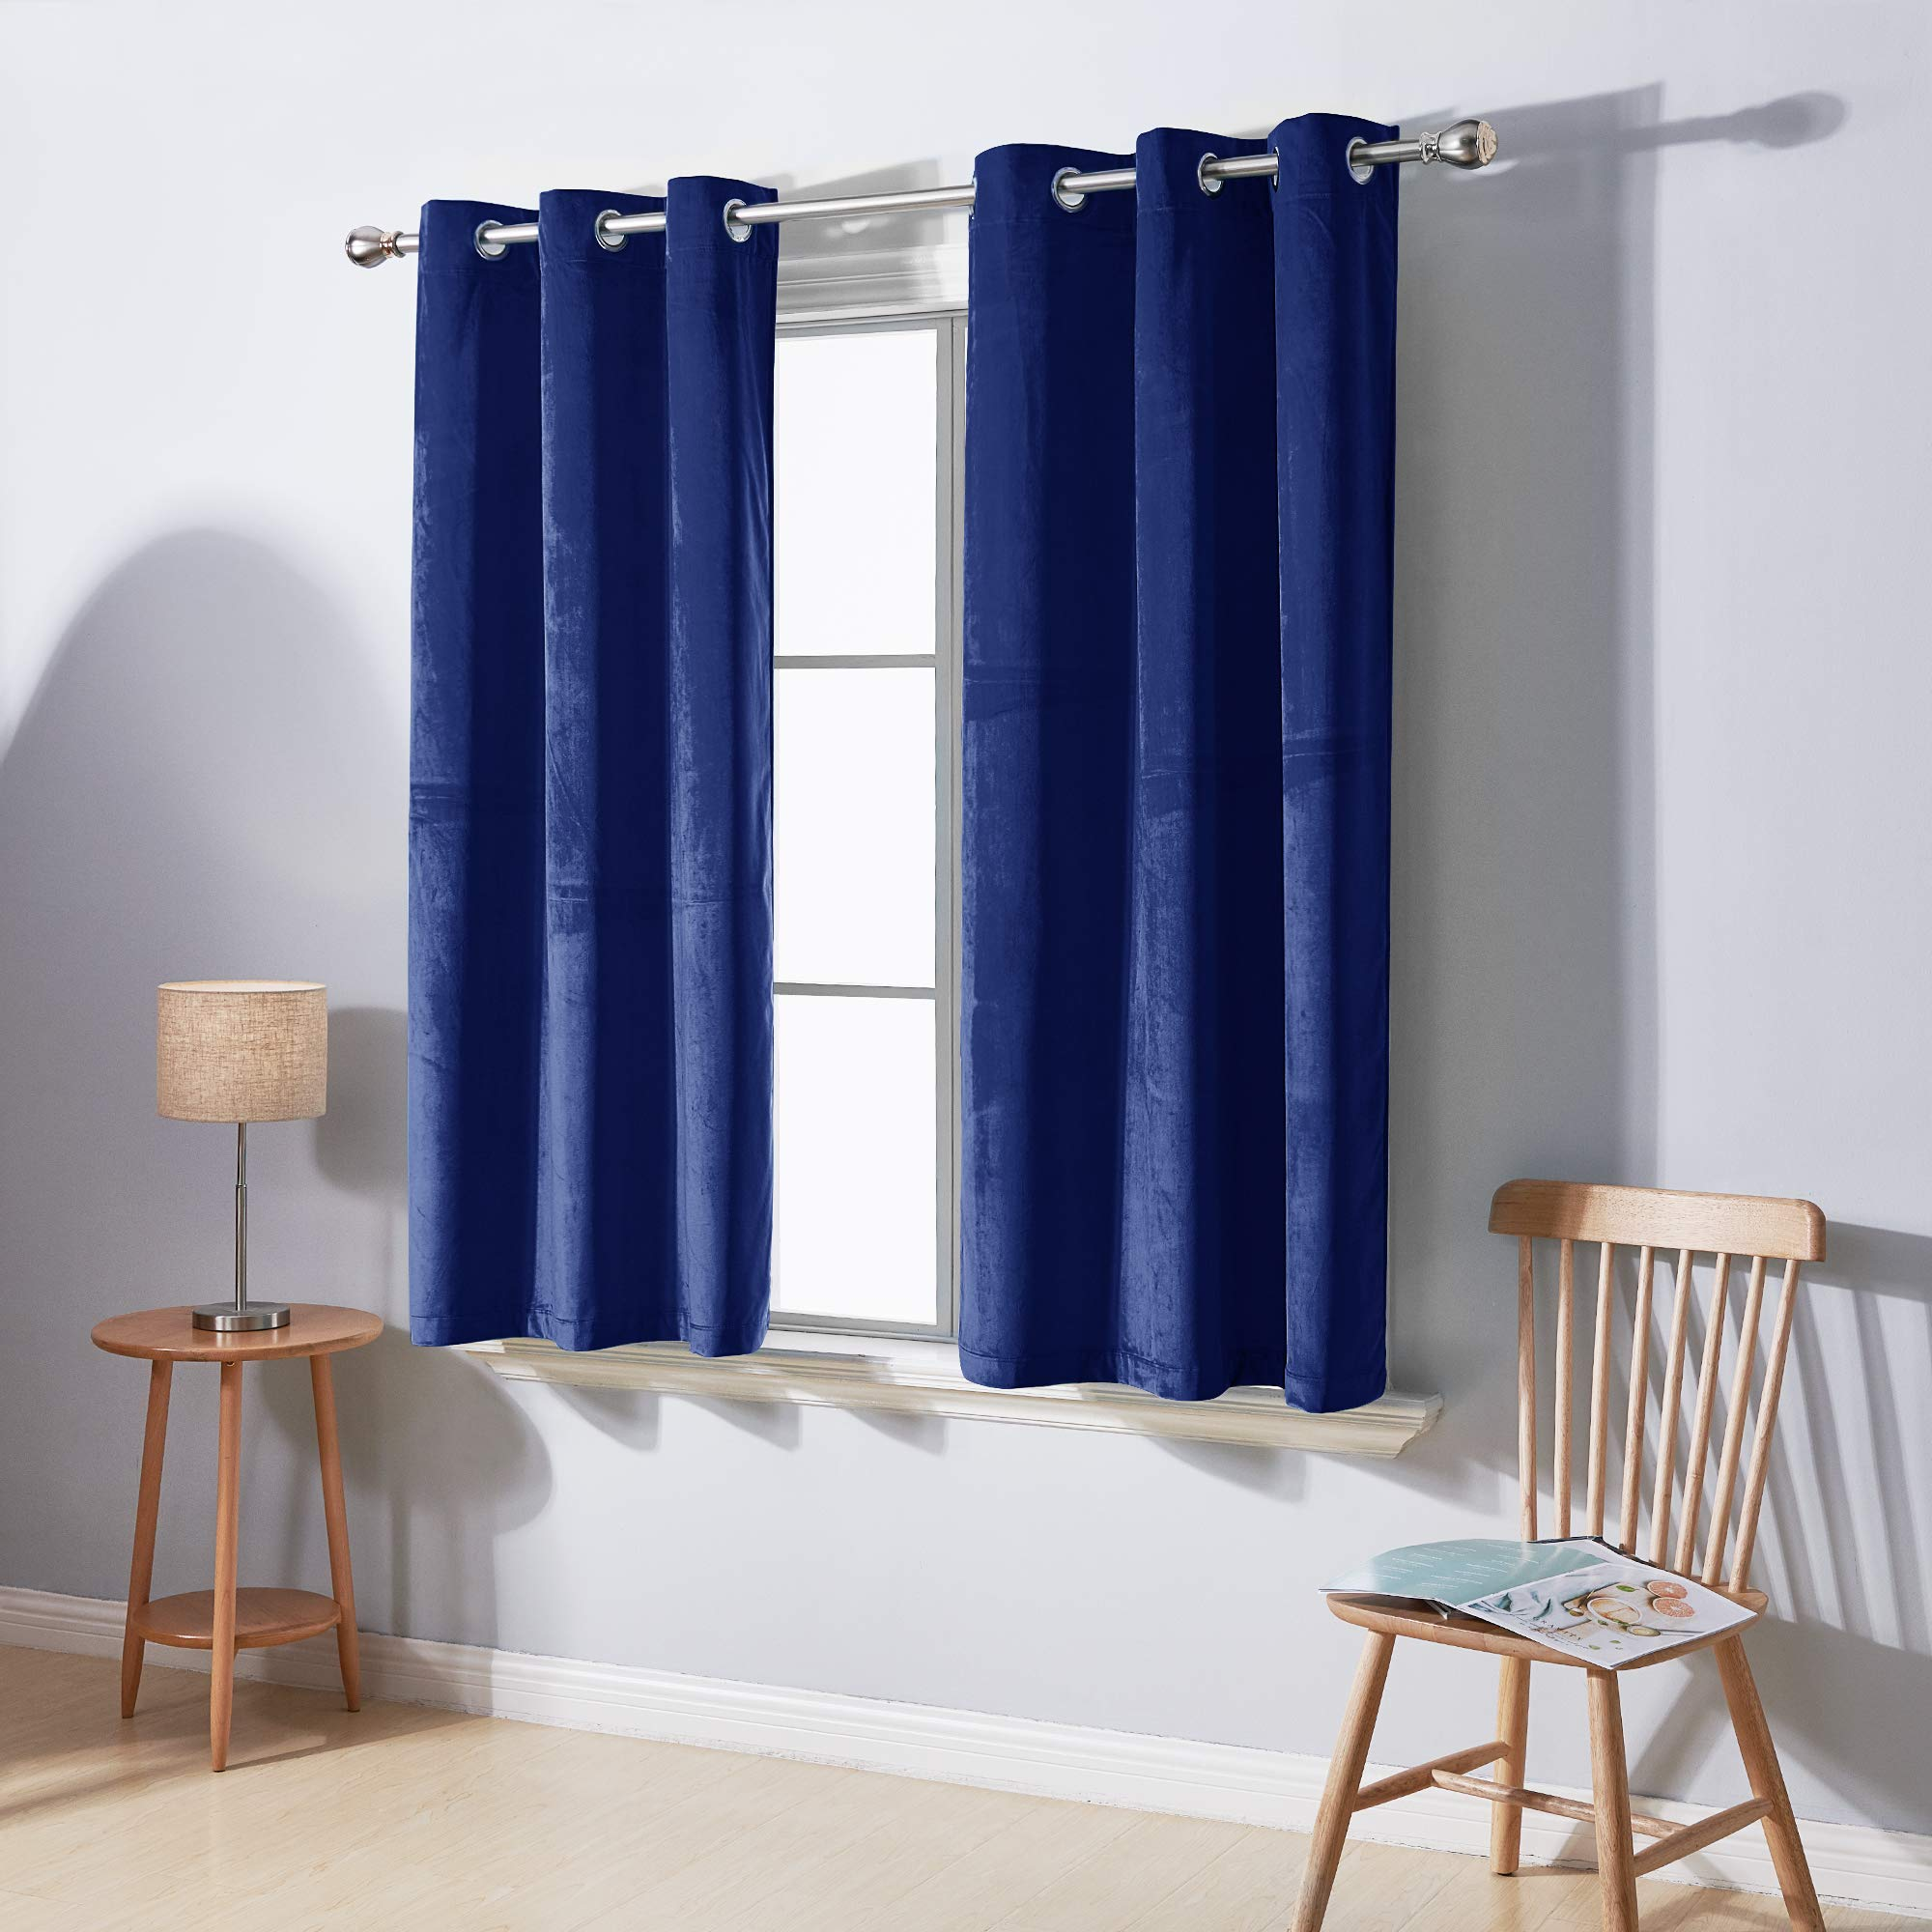 Deconovo Room Darkening Thick Velvet Curtains Thermal Insulated Navy Curtain Panels With Grommet Super Soft Cozy Velvety Window Panel 2 Panels Navy Blue 42wx45l Inch